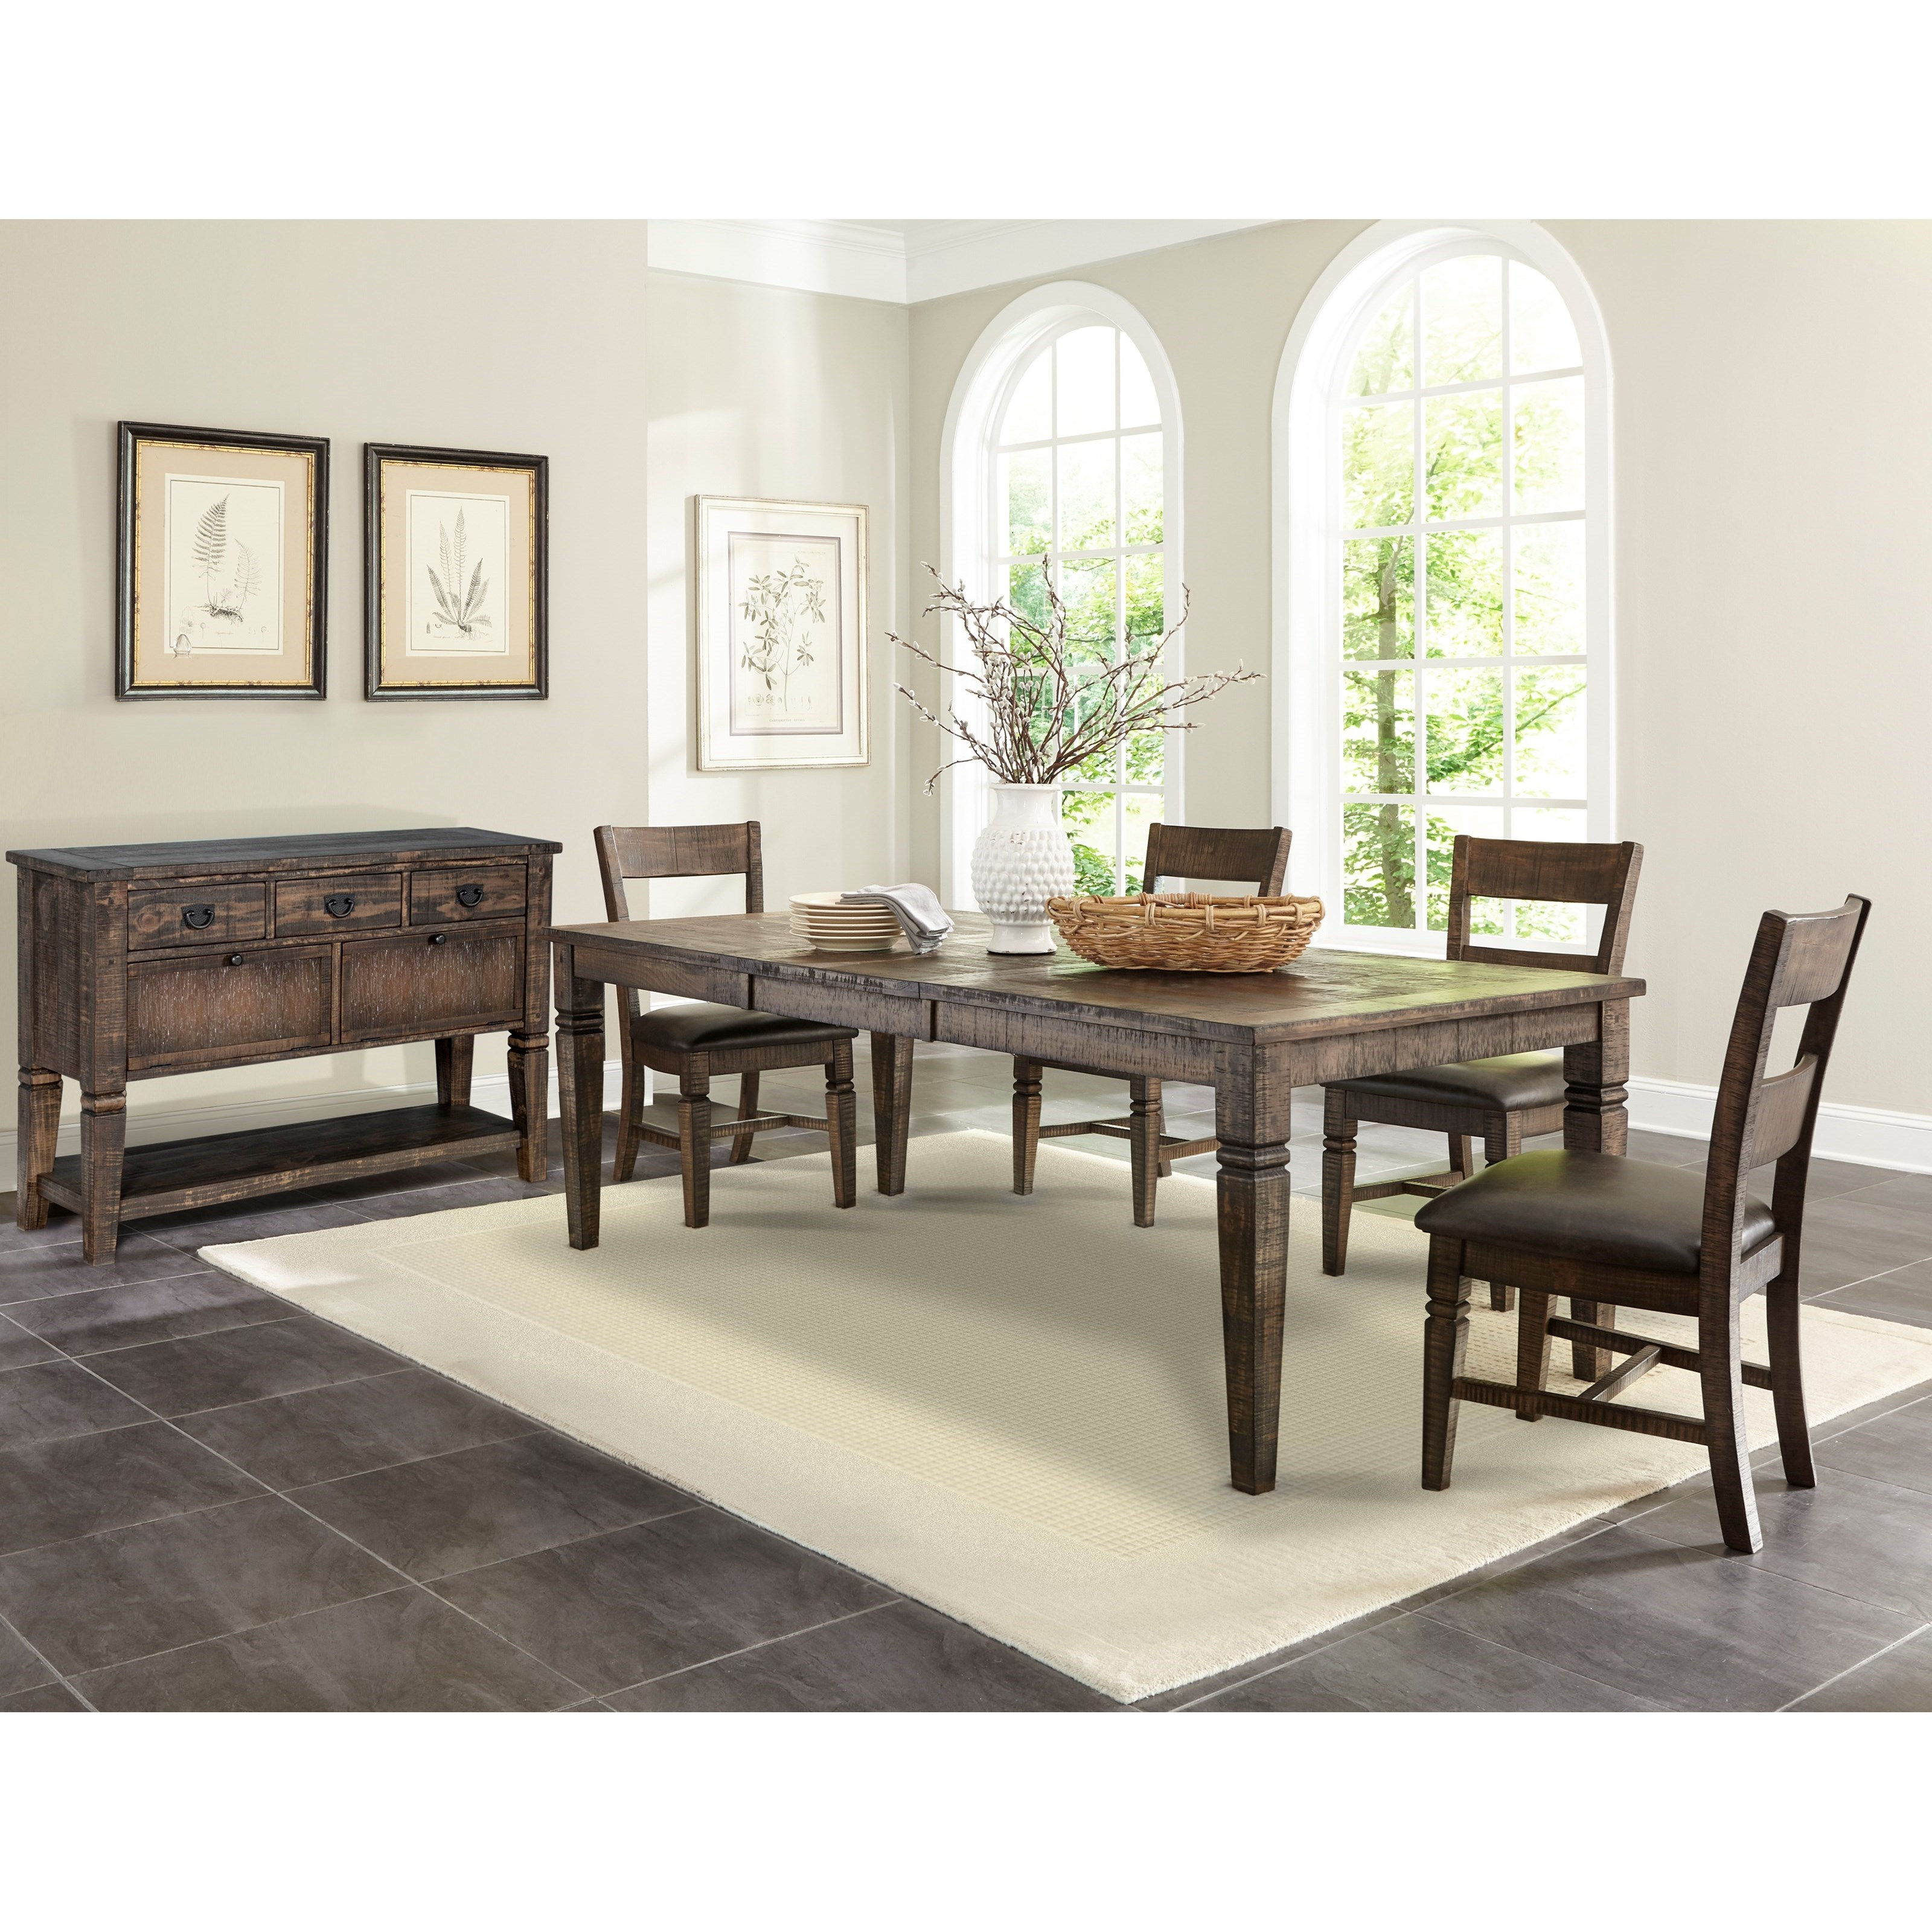 Sunny Designs Homestead 2 Rustic Extension Dining Table ...